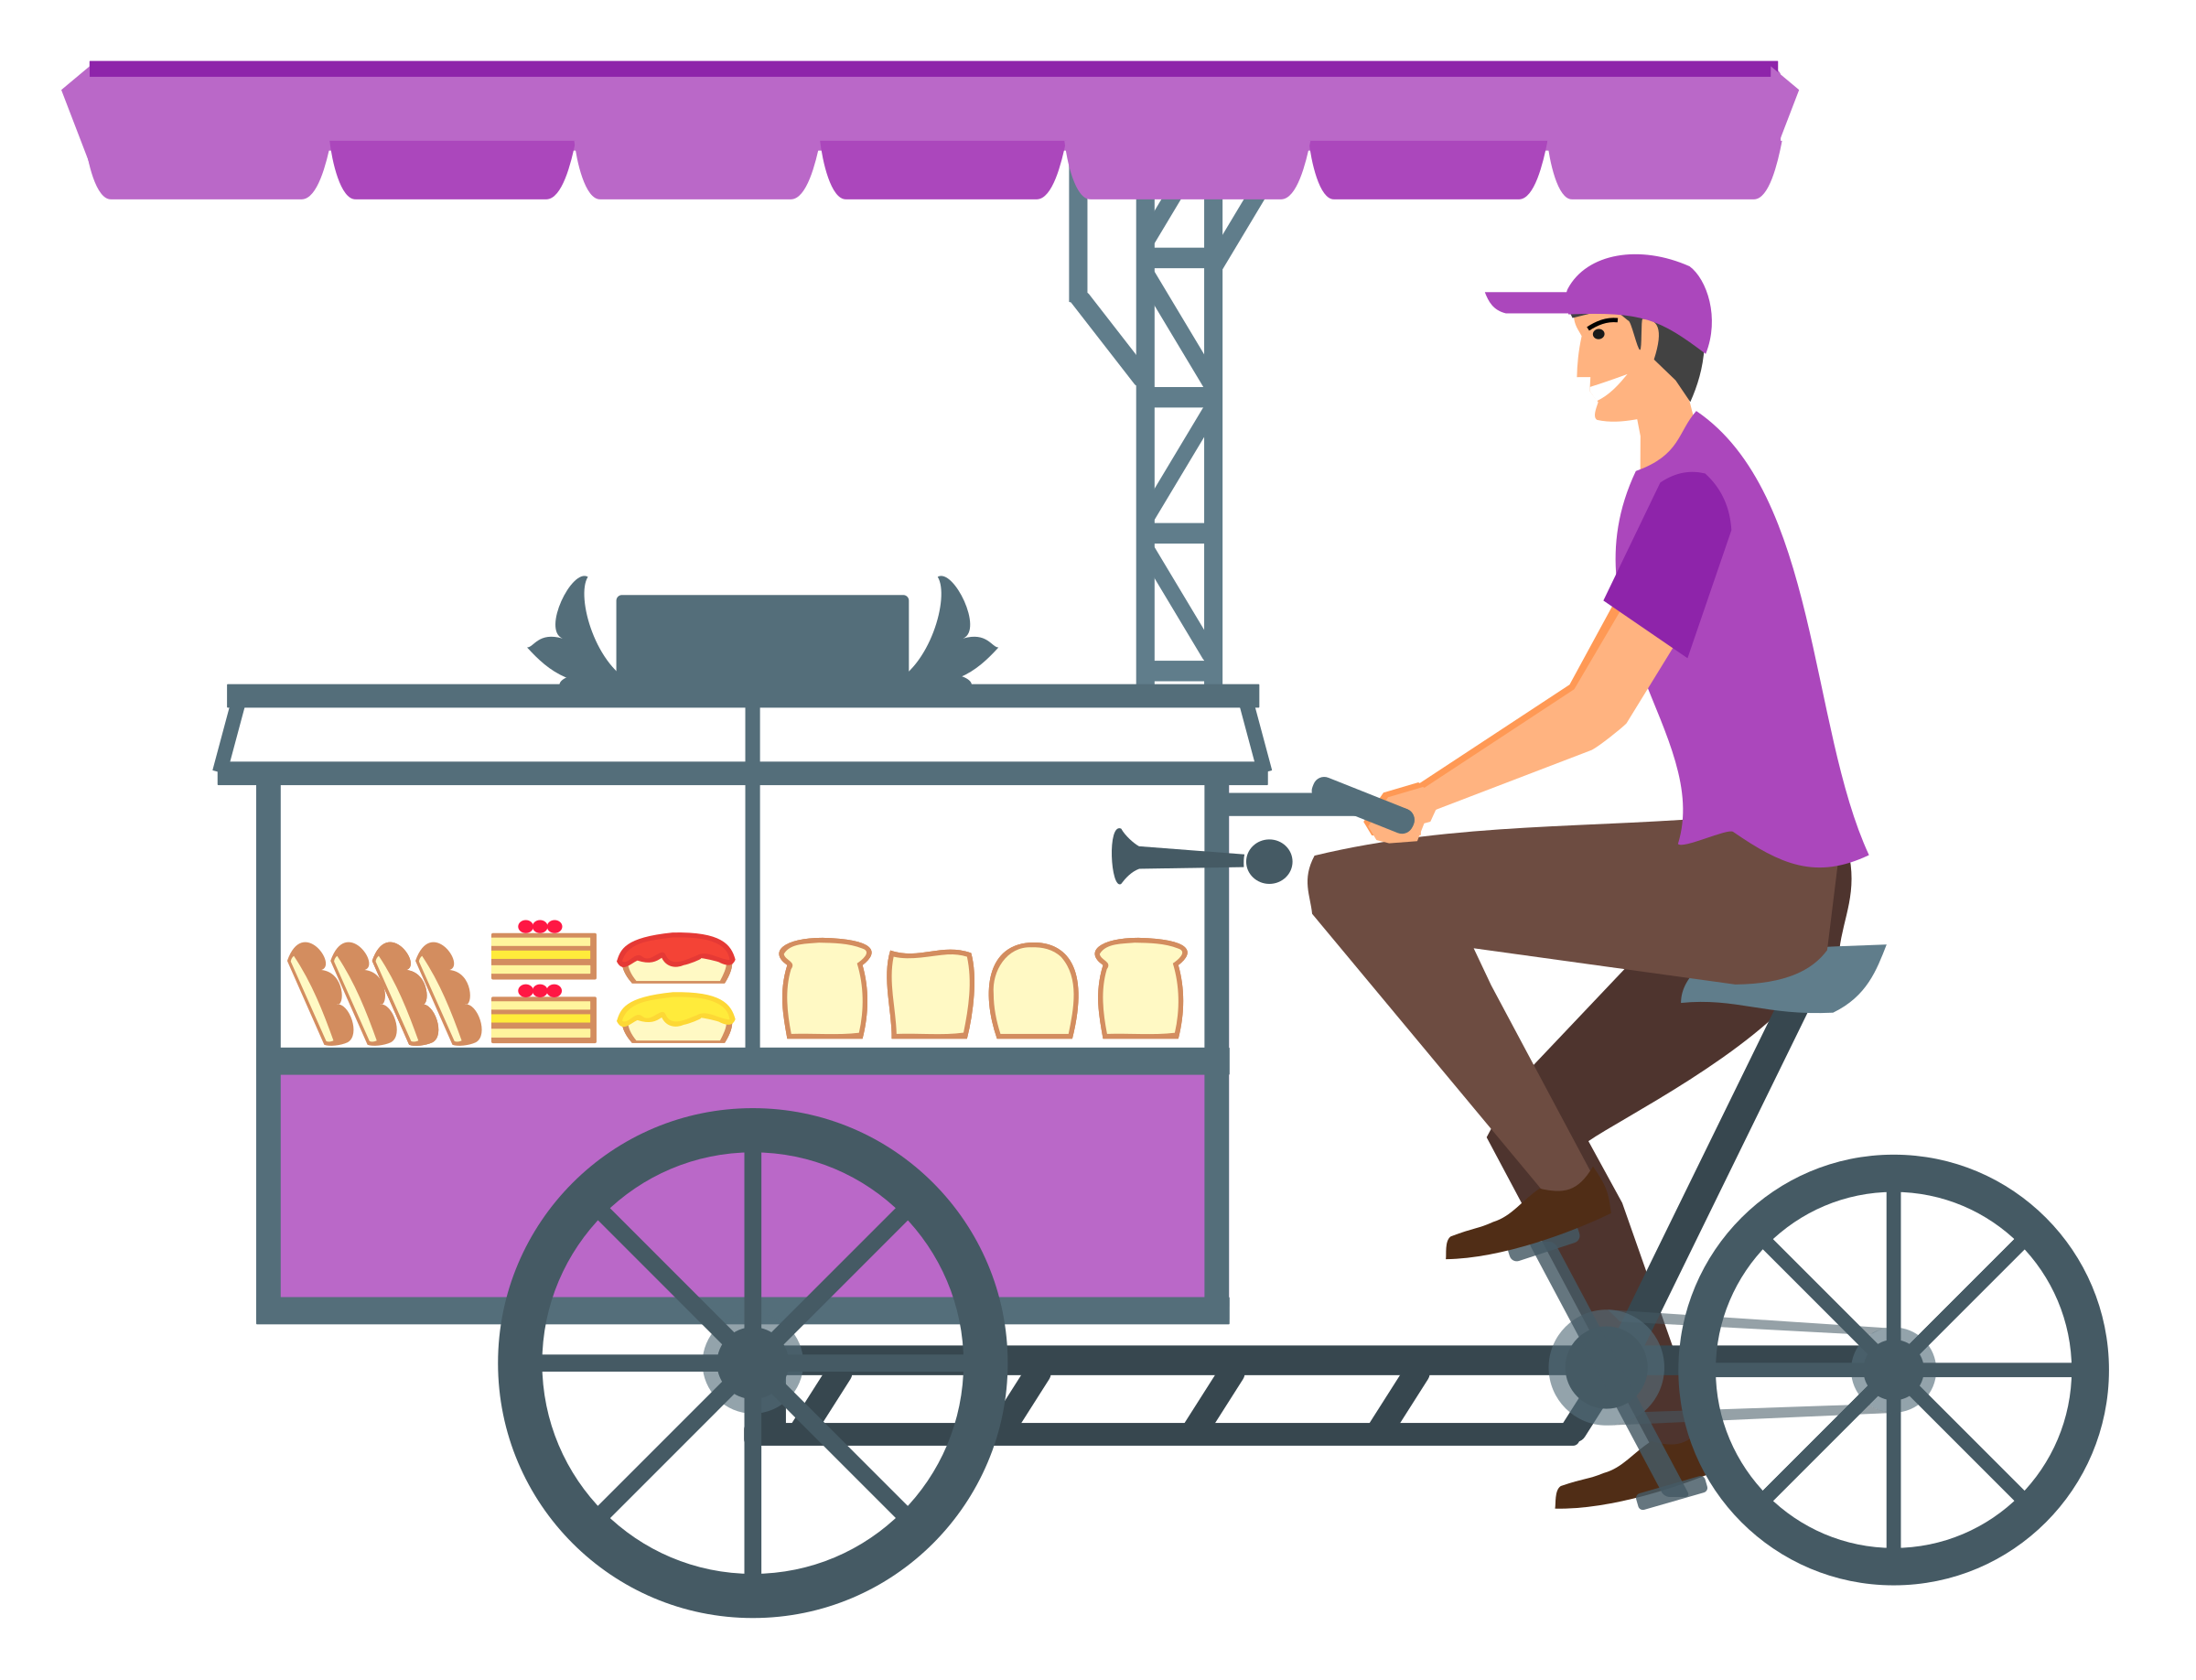 Bread Seller with Advanced Cycle cart by Vexagrafi